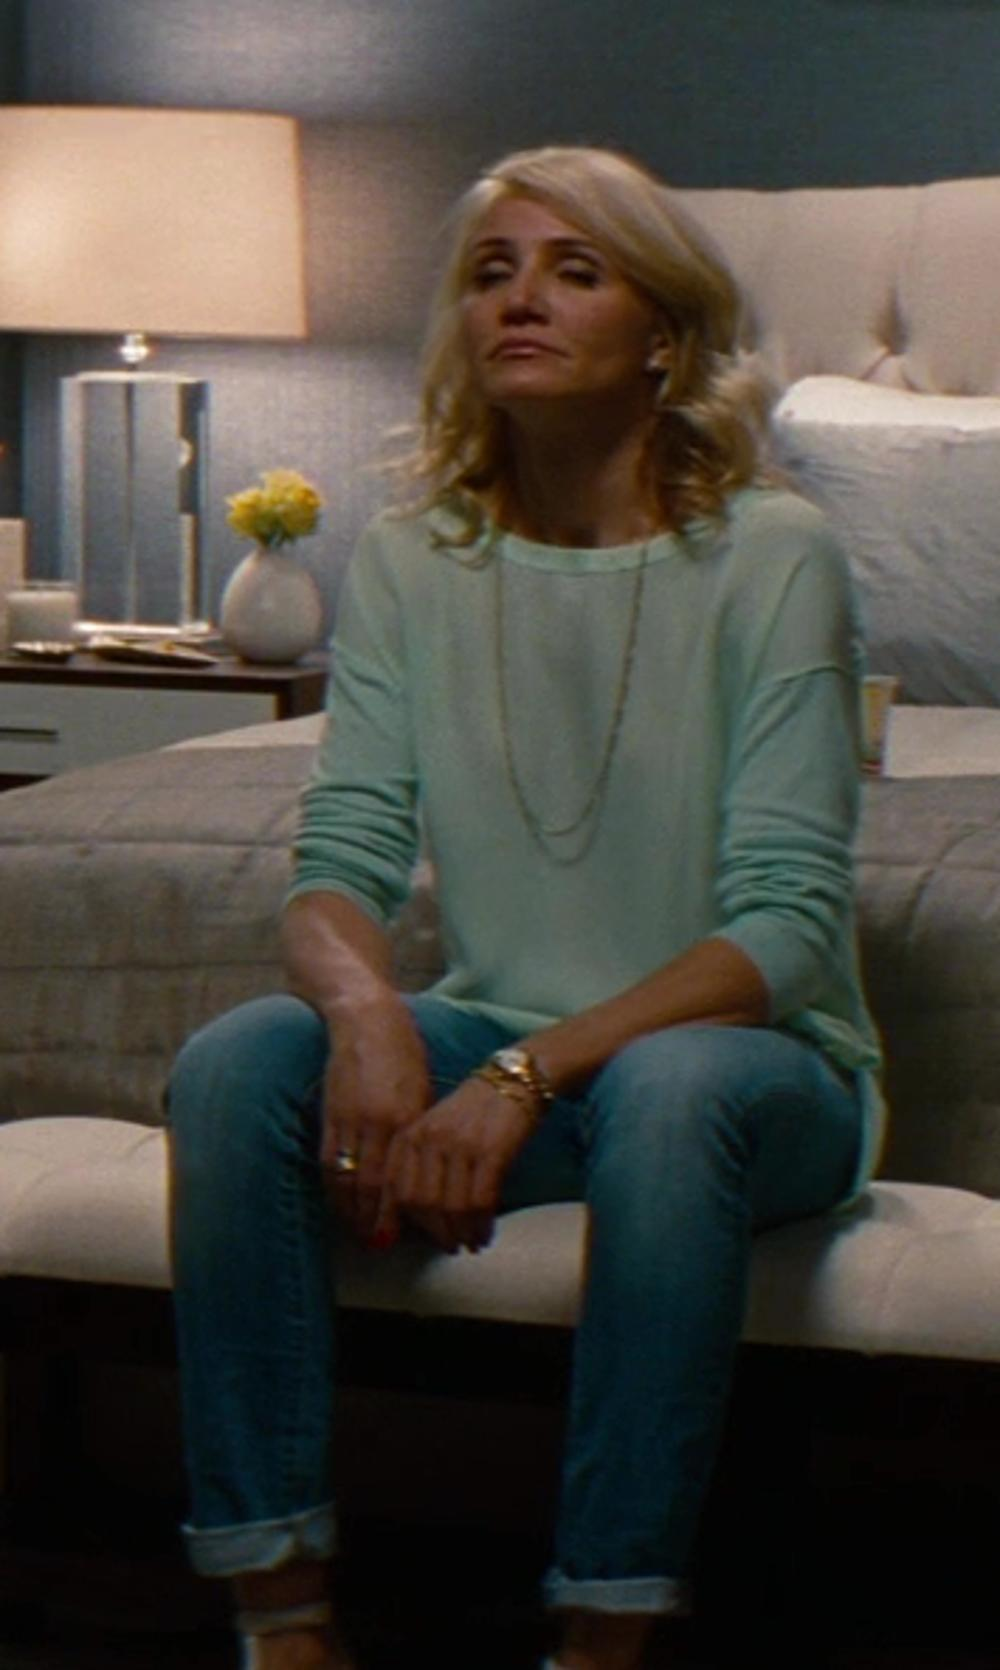 Cameron Diaz with Dolce & Gabbana Pretty Stretch Cotton Denim Jeans in The Other Woman